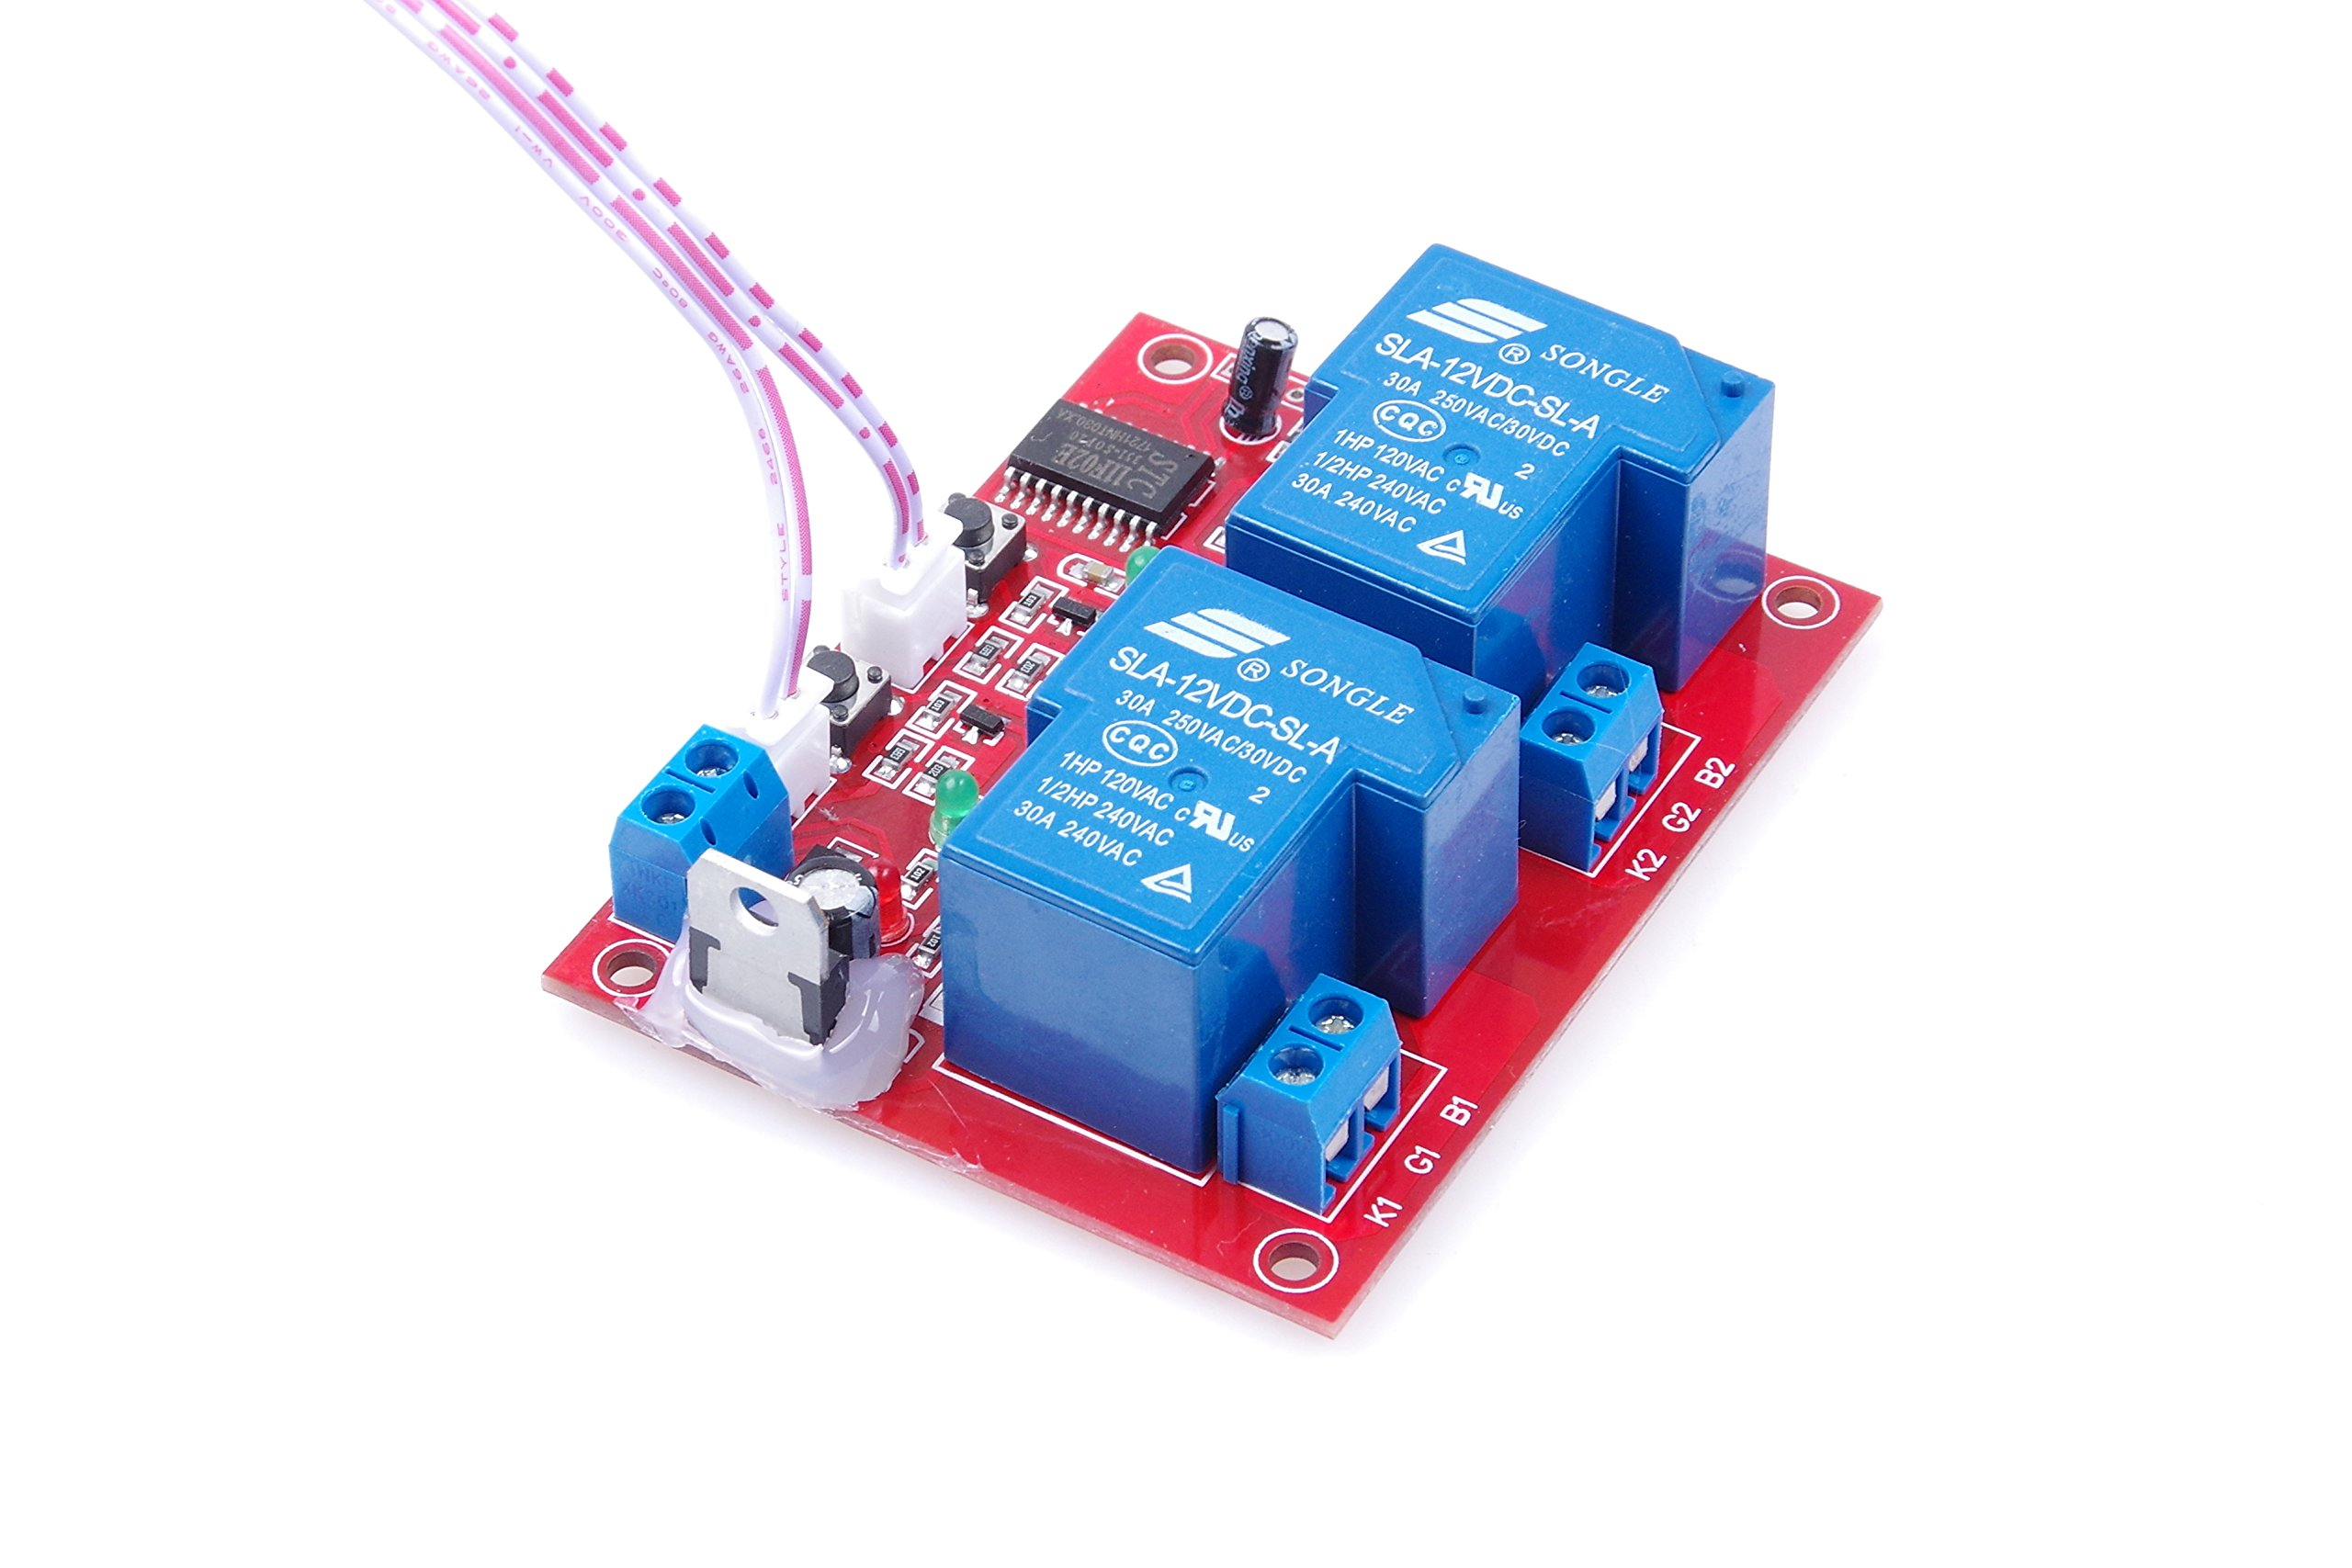 KNACRO DC 12V 2-Channel Self-latching Relay Module One-Button Bistable Switch One-button Start/Stop High-level Trigger